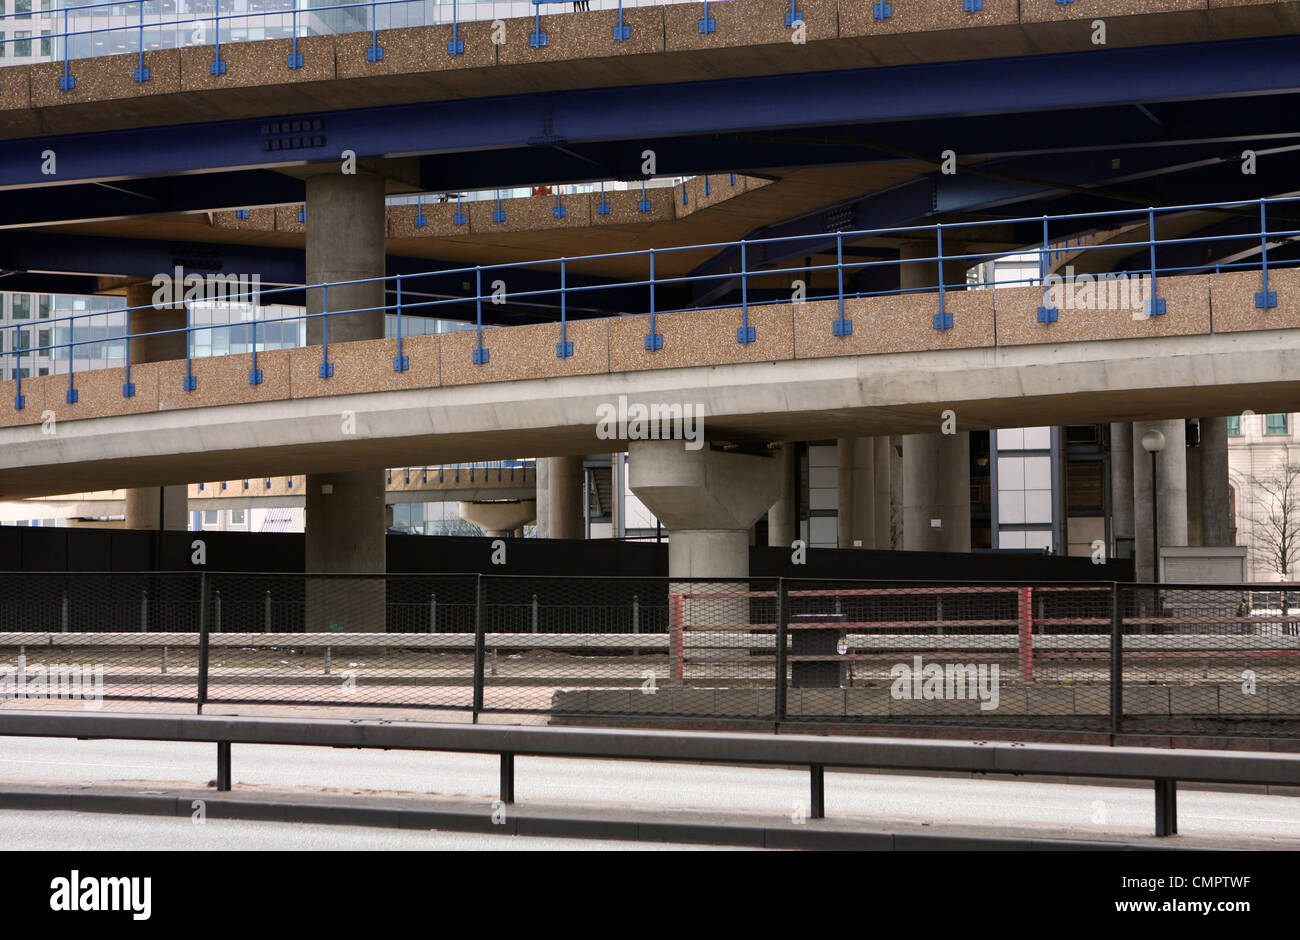 side view of roads and railway overpasses around London's Canary Wharf - Stock Image